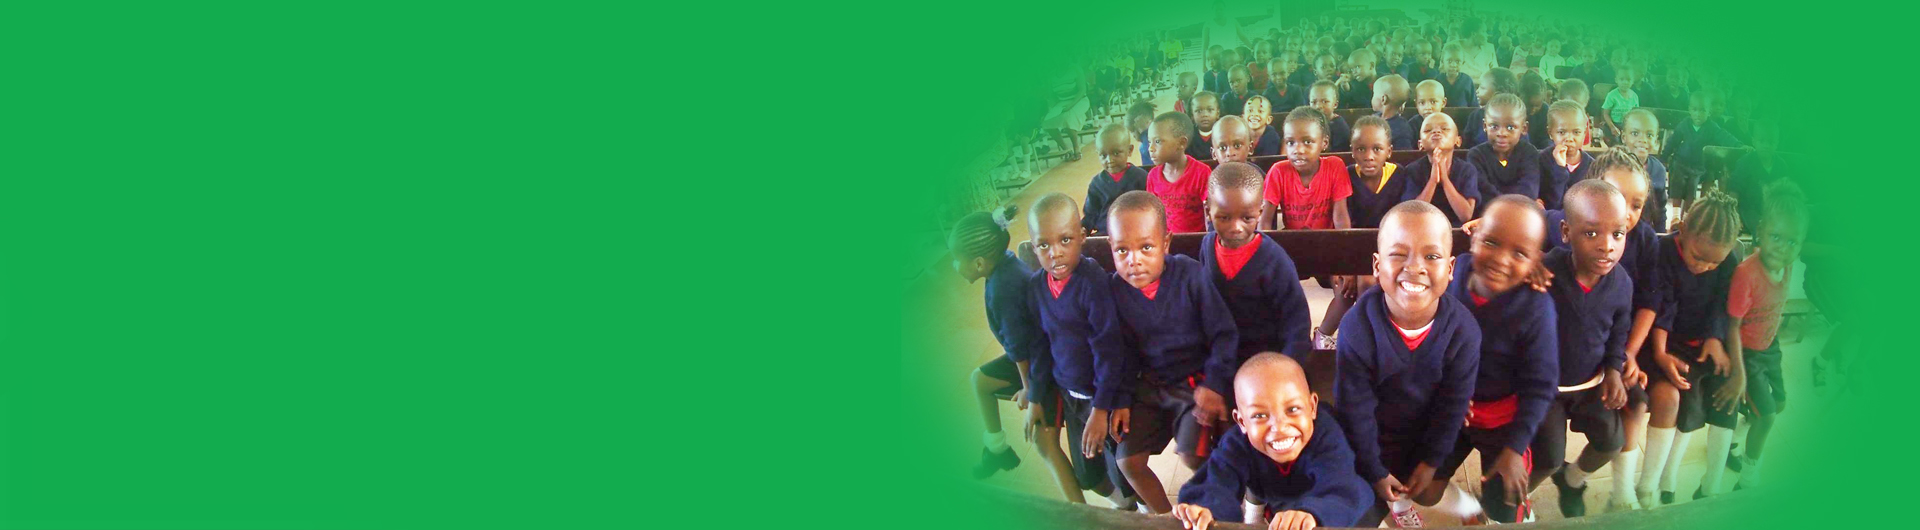 Sponsor a Child in Need